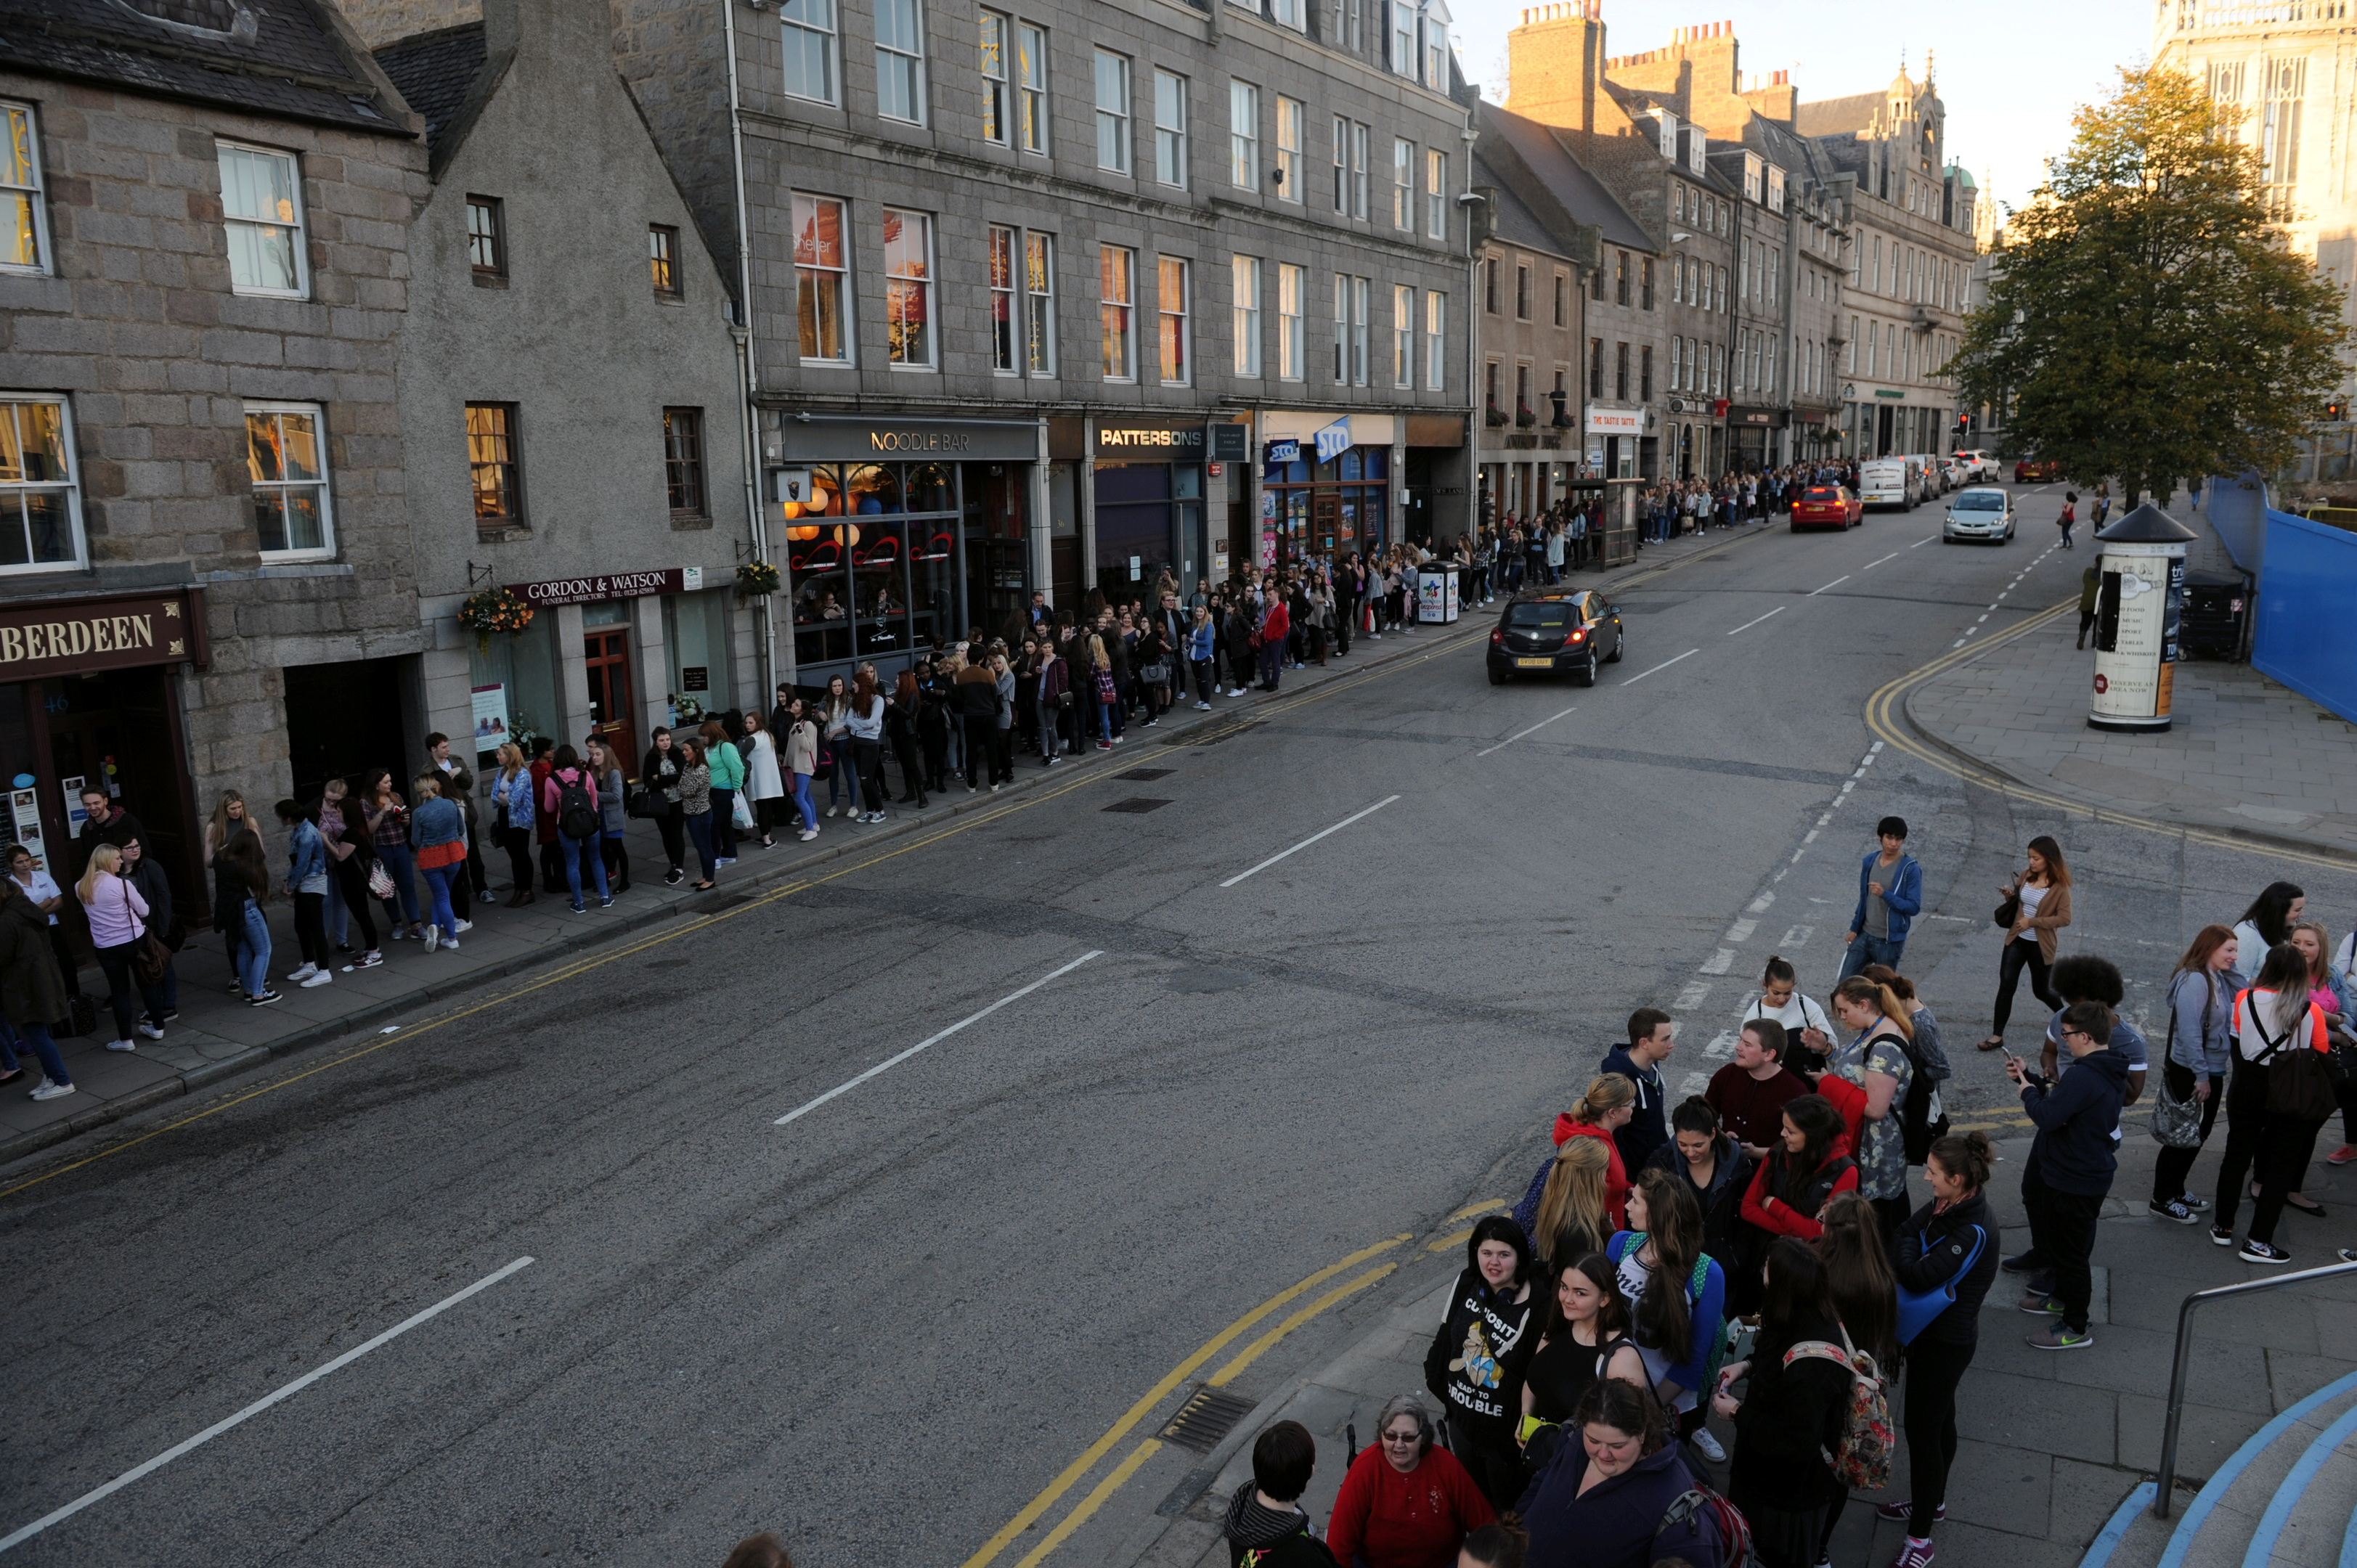 Huge queues formed as excited students prepared for last year's event.